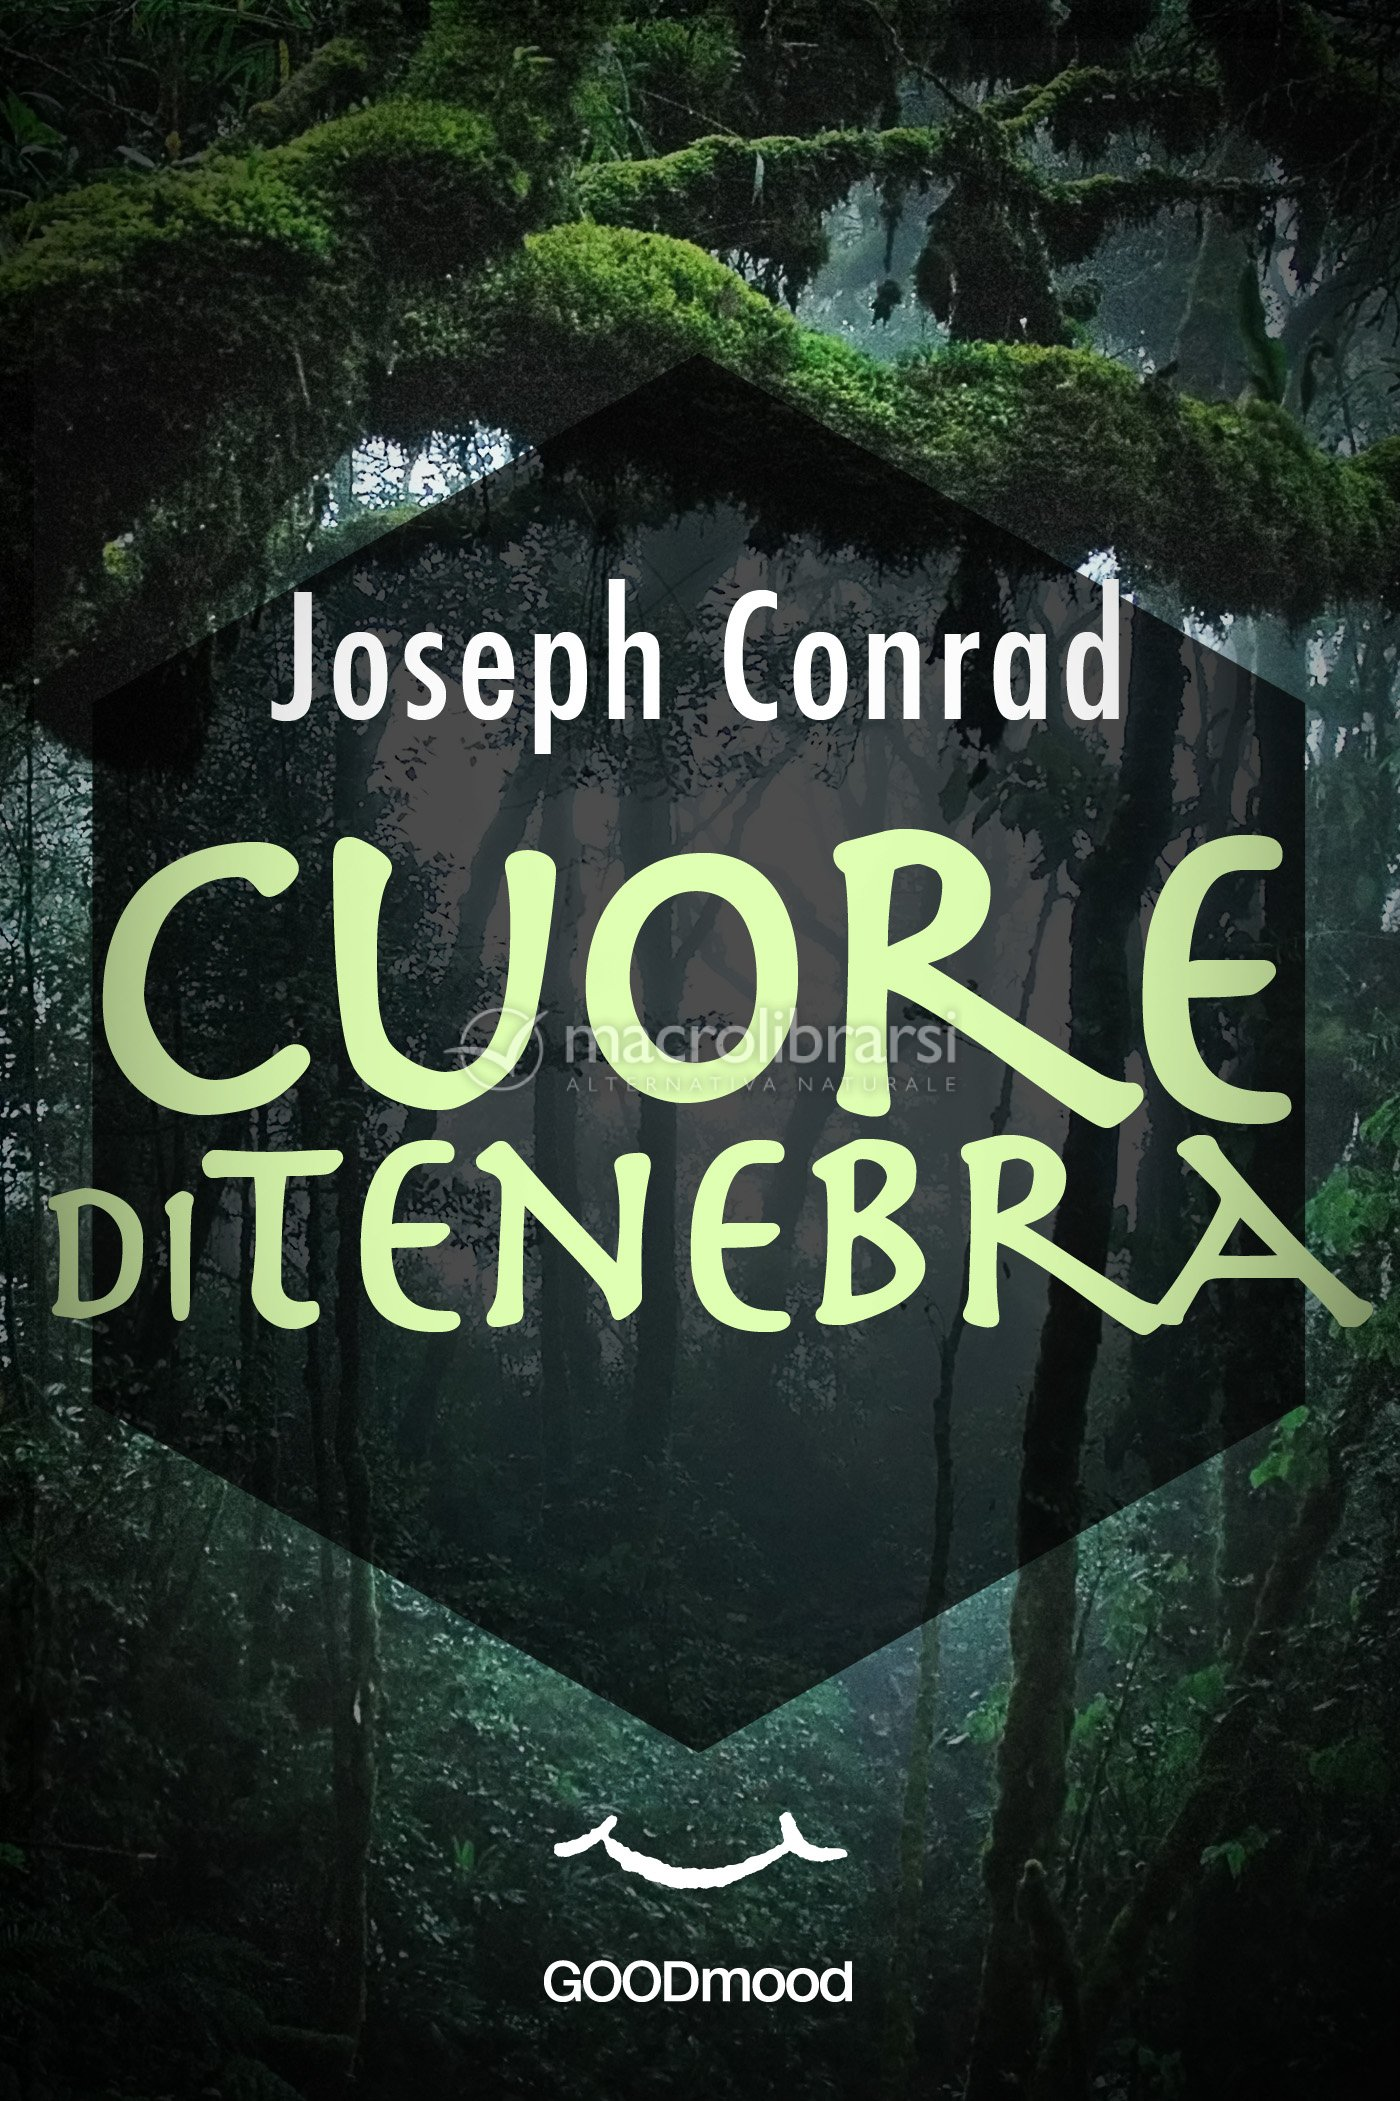 Di tenebra download cuore ebook